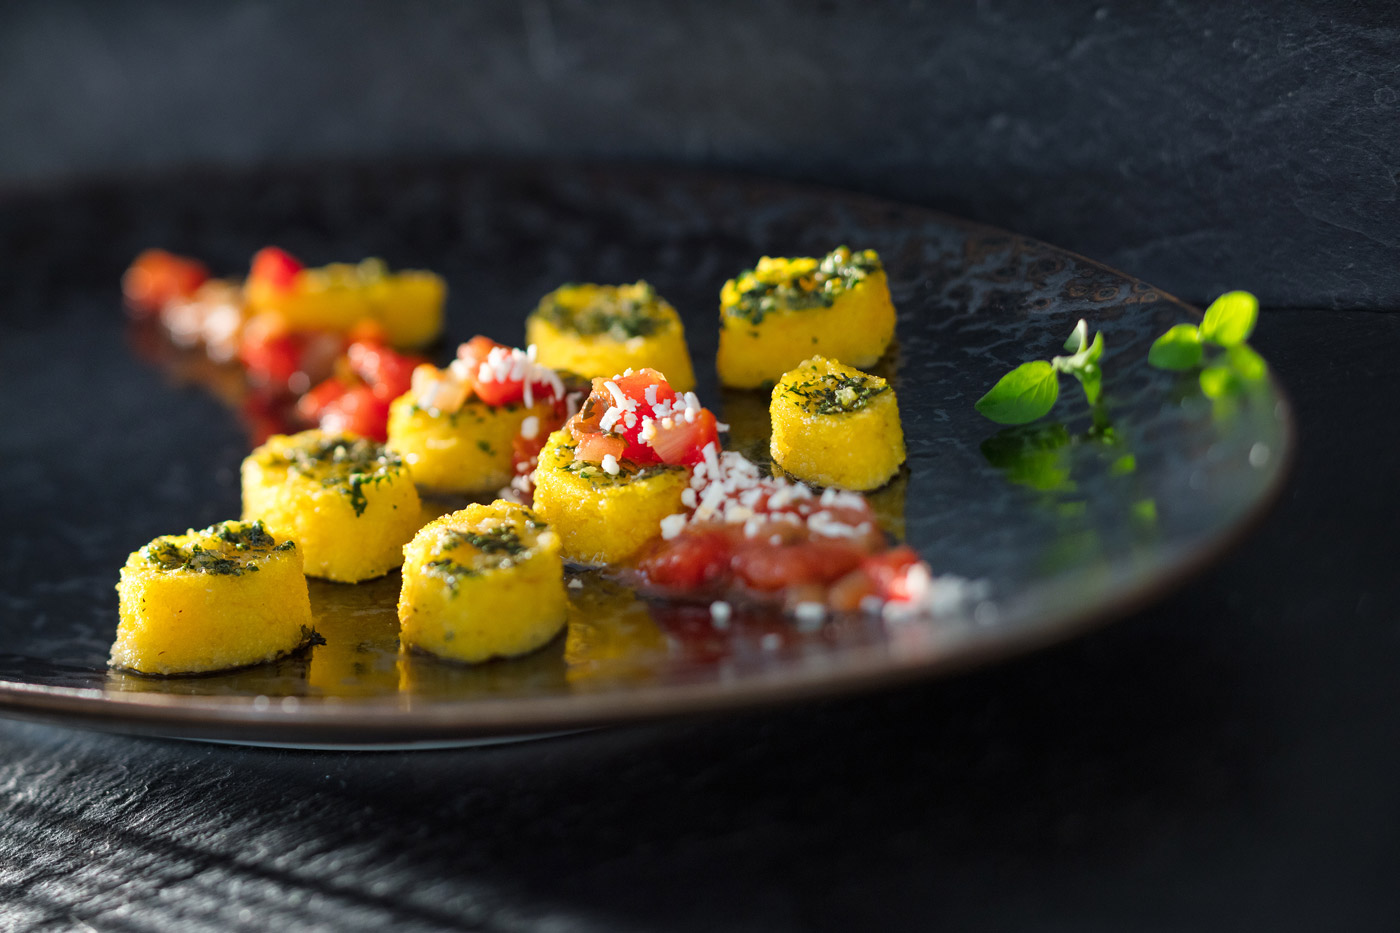 Recipe image of fried polenta